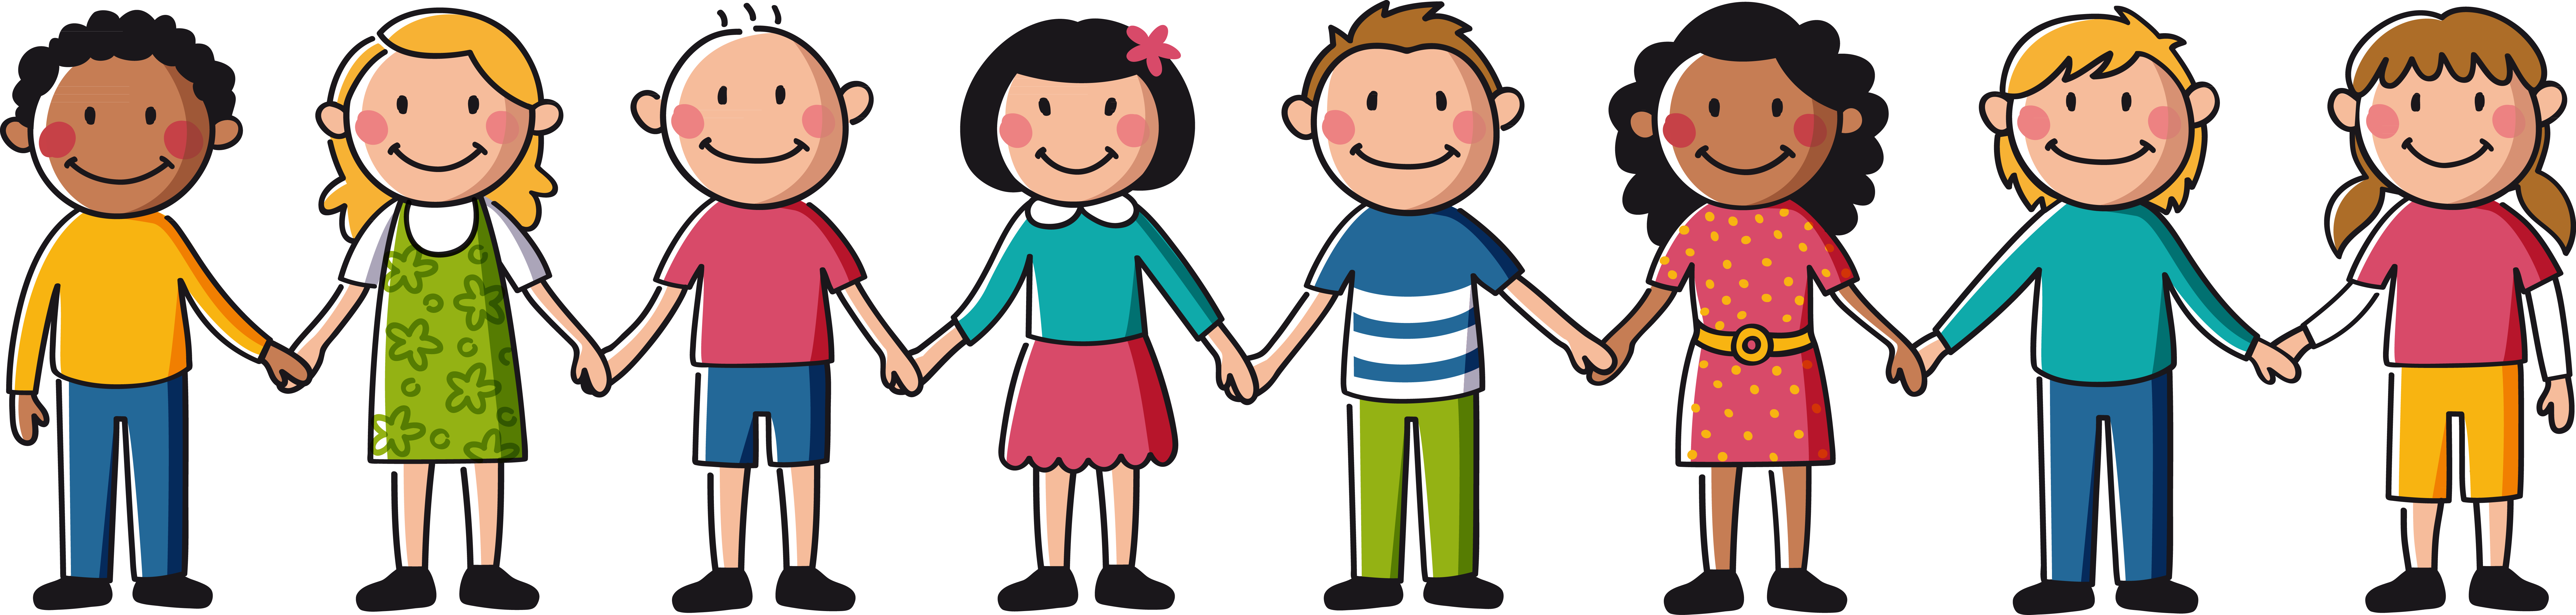 Hand clipart friend. Kids holding hands drawing